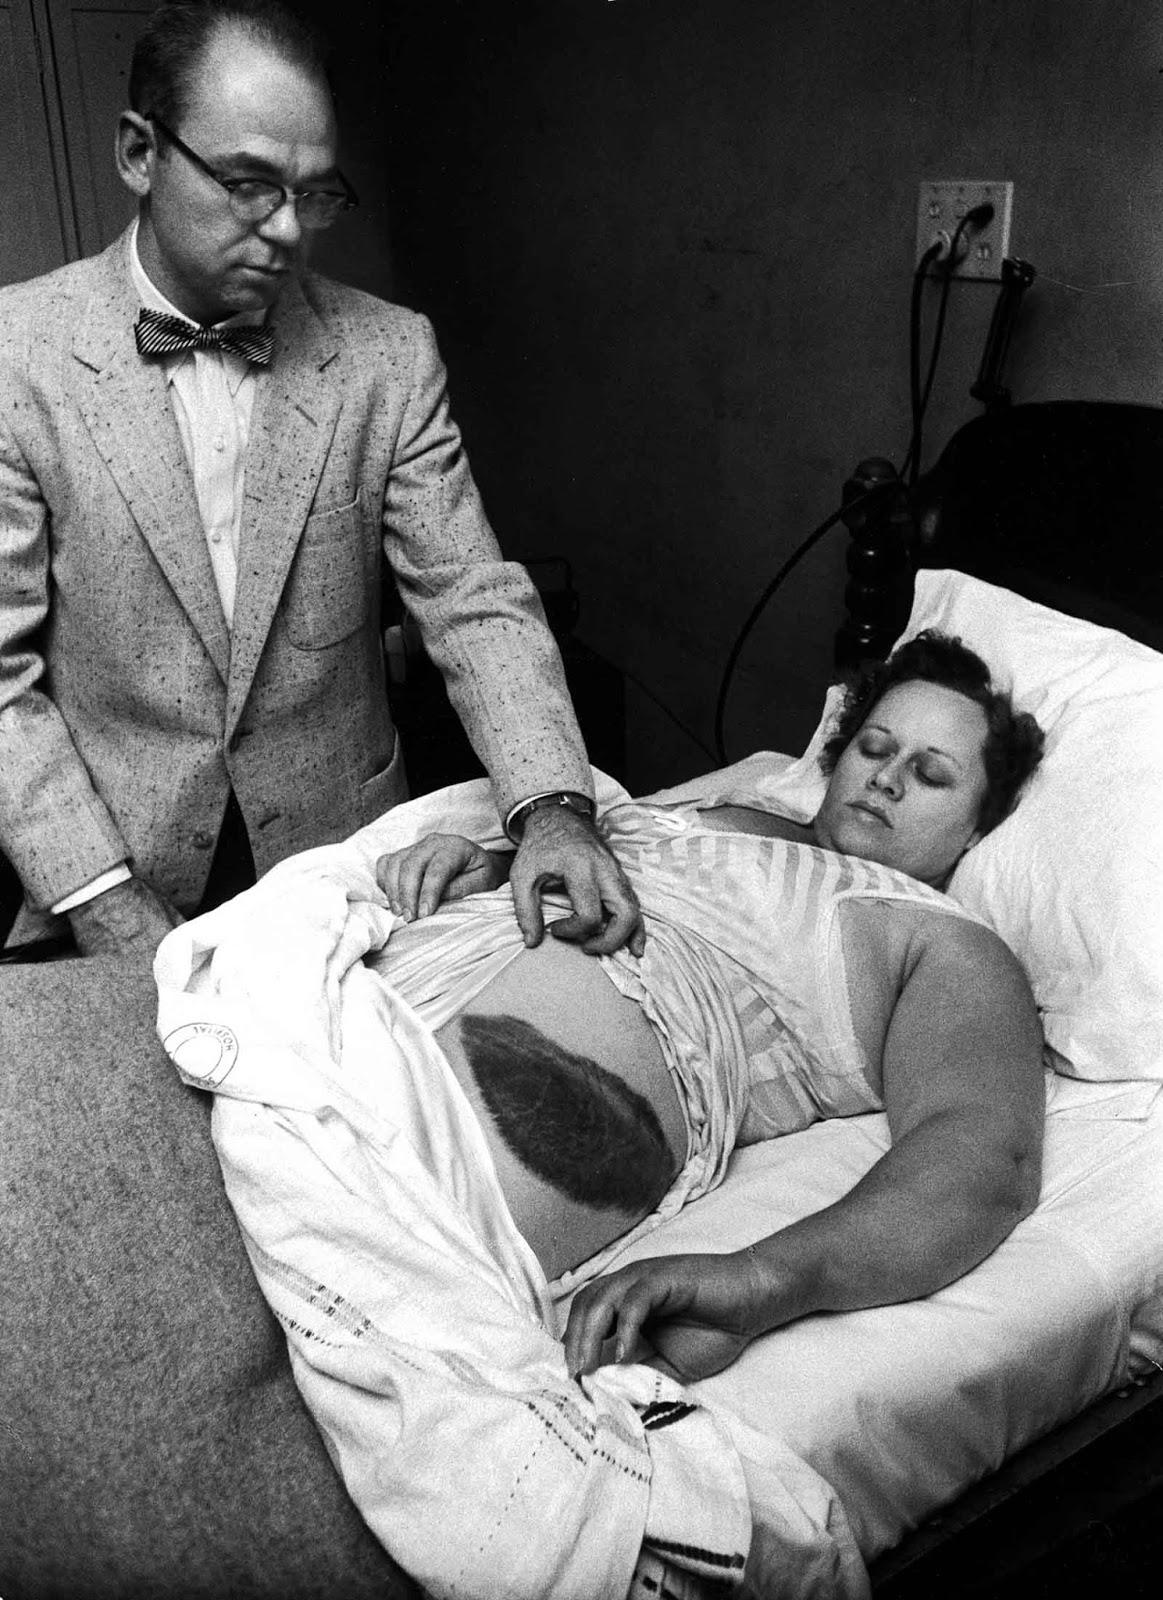 Dr Moody Jacobs shows a giant bruise on side and hip of his patient, Ann Elizabeth Hodges, who had been struck by a meteorite while inside her home, 1954.